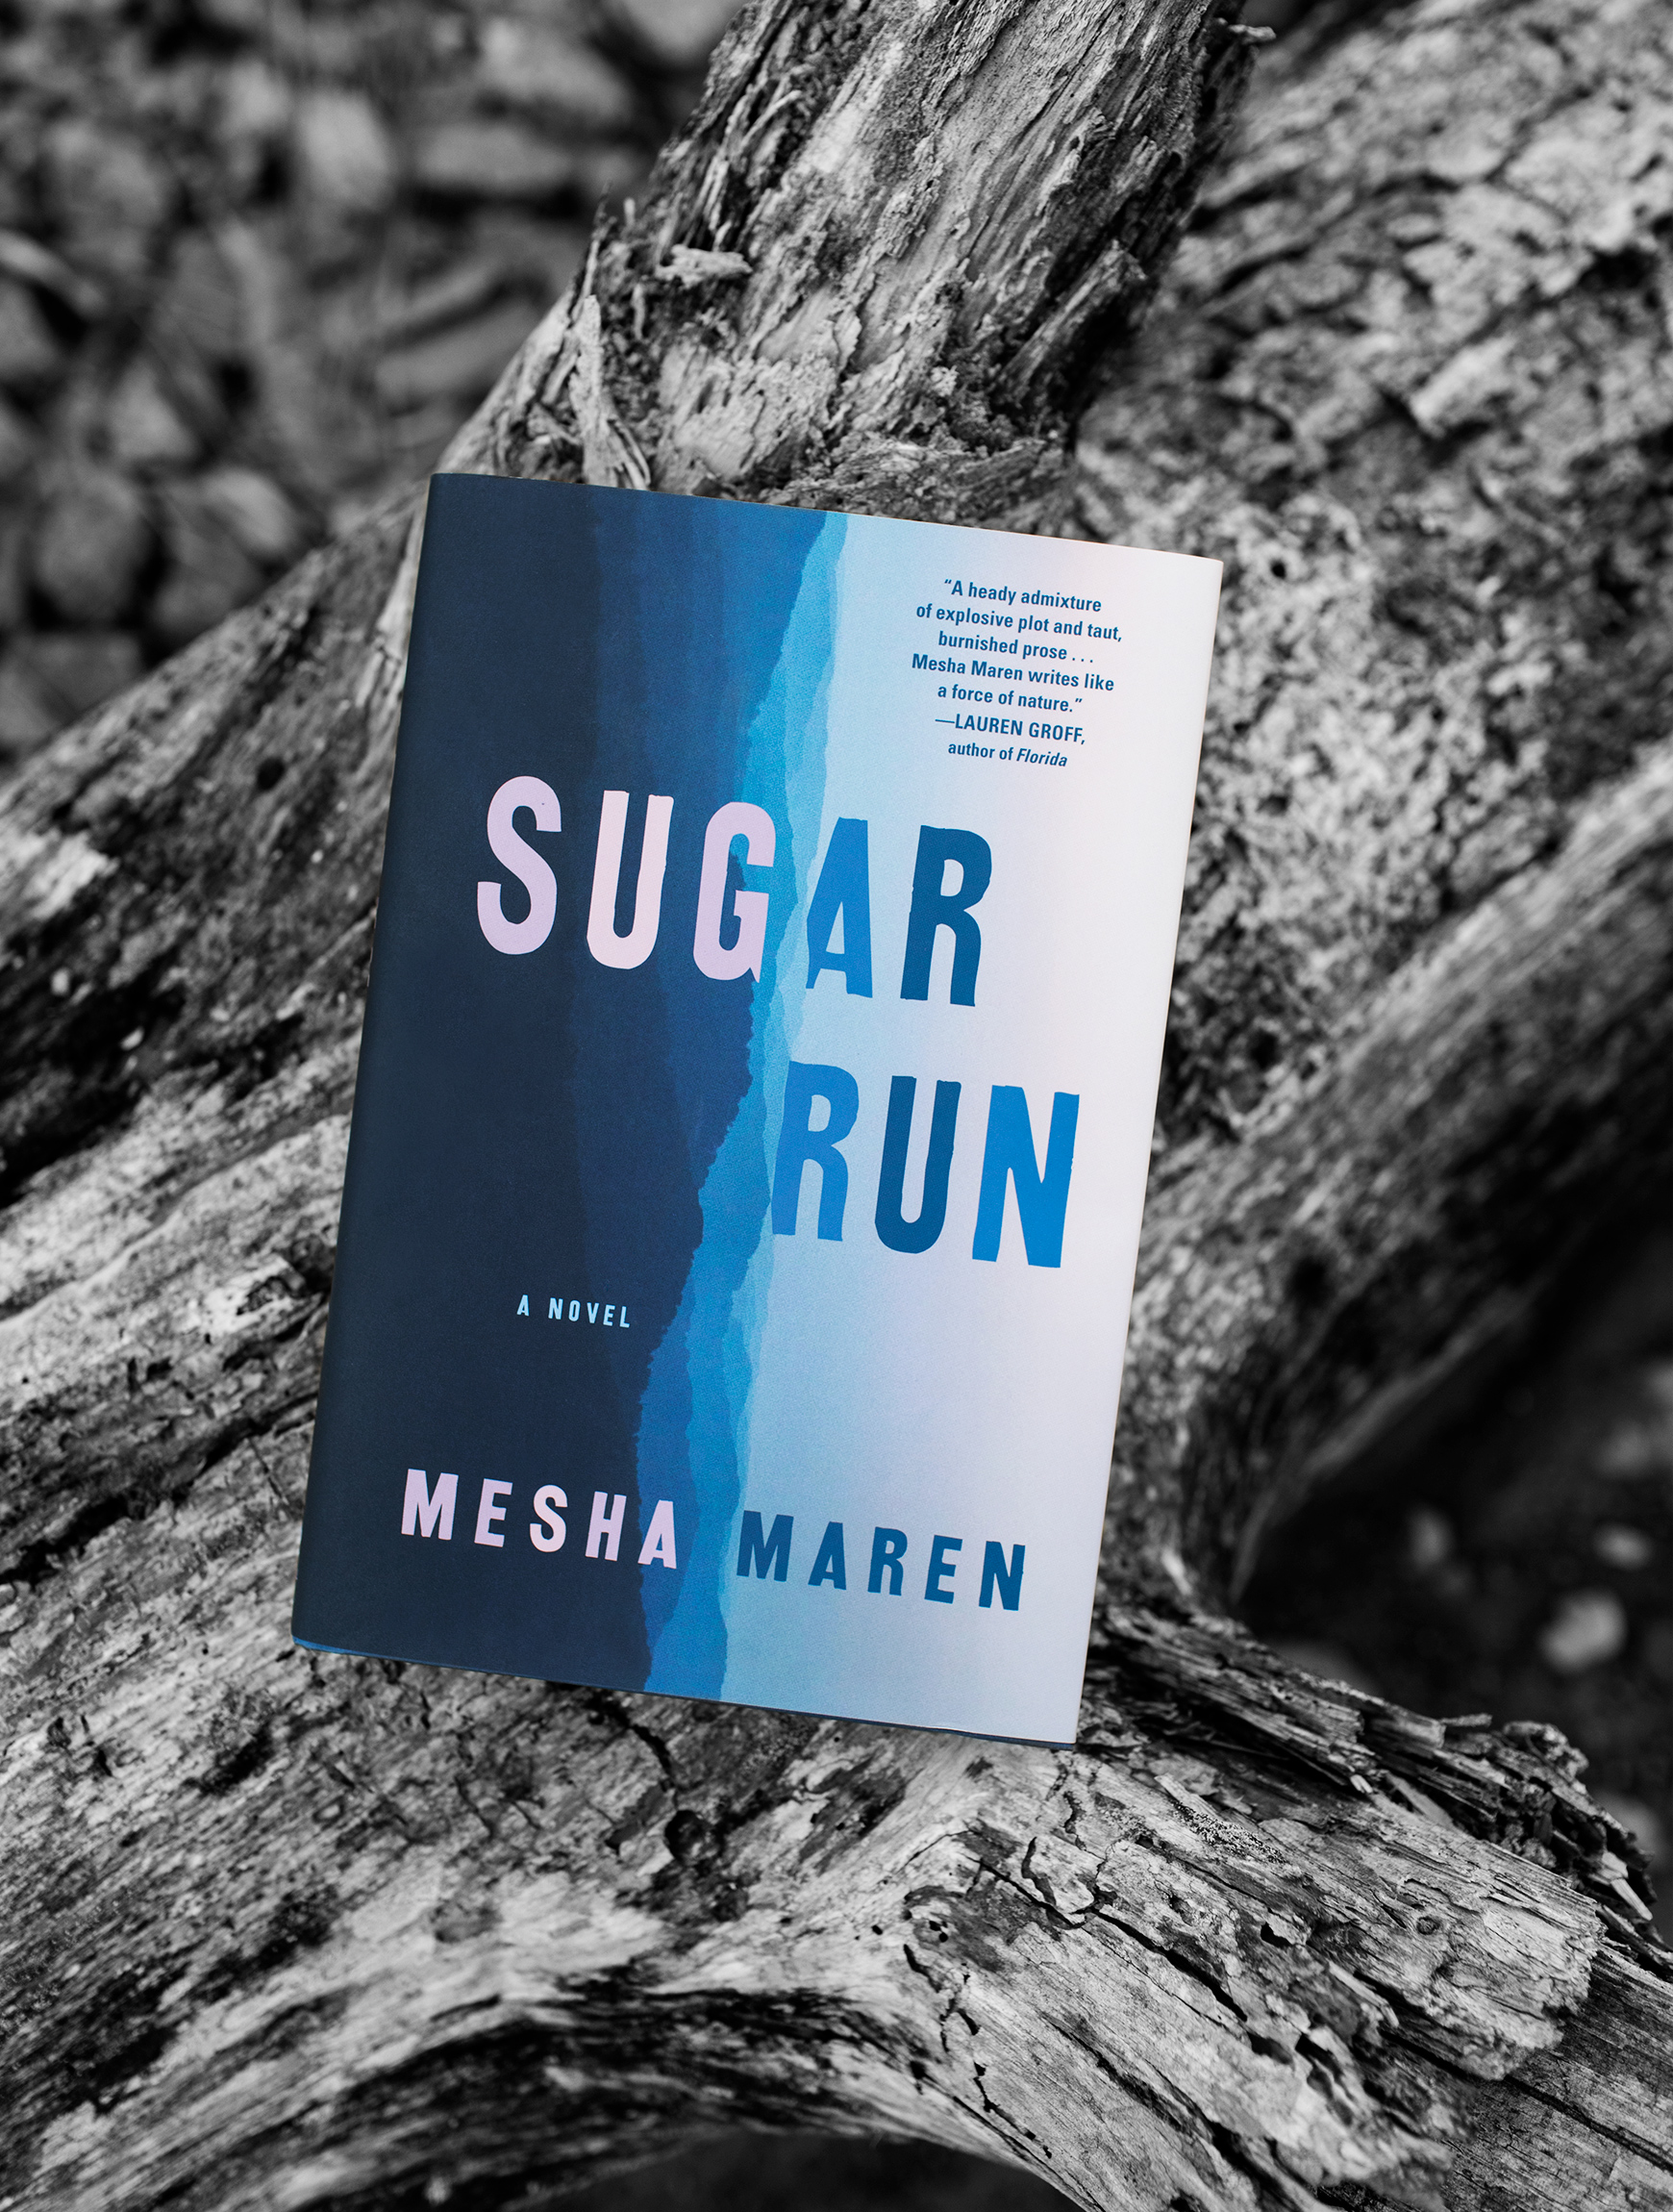 "Mesha Maren's""Sugar Run"" for the lily - We felt an easy connection photographing author Mesha Maren back in February. Her debut novel ""Sugar Run"" was featured in The Lily (a women-focused offshoot publication of The Washington Post). The Lily asked us to capture a series of portraits of her in Carrboro, NC as well as an image of her new book in a natural setting. The final images, presented in black & white, accompanied her feature interview and were published on The Lily's social media channels. Maren's novel dissects a character rebuilding her life after prison, who finds a second chance by returning to her Appalachian roots. Read the full interview here."